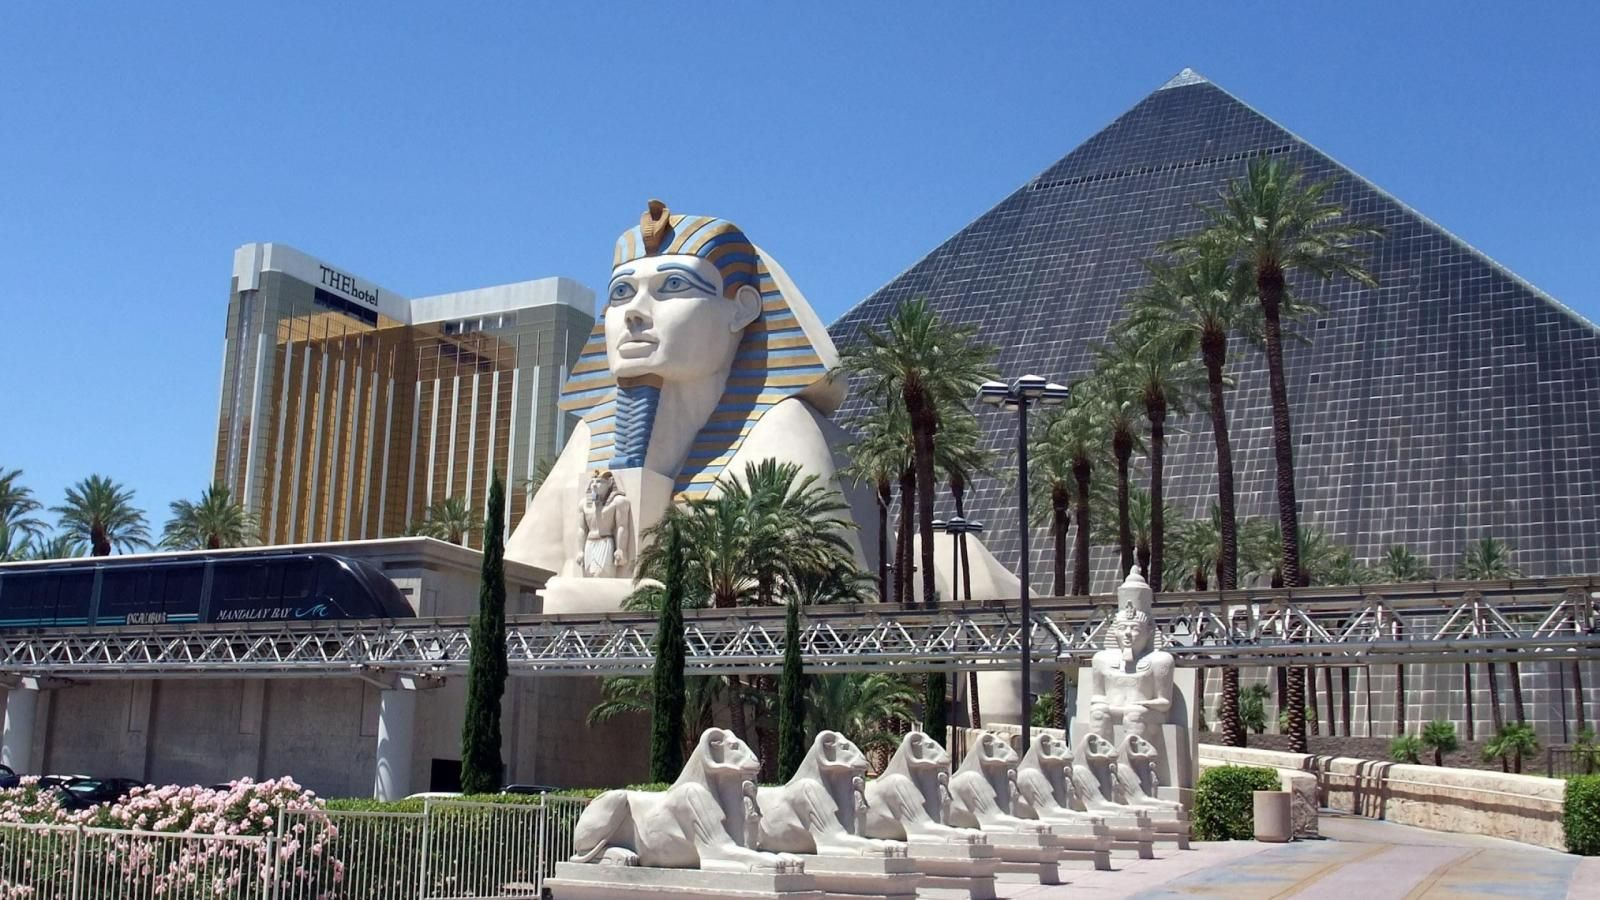 Http Www Wallsave Wallpapers 1600x900 Egypt 240248 Travel Luxor Hotel Egyptian Revival Architecture Las Jpg